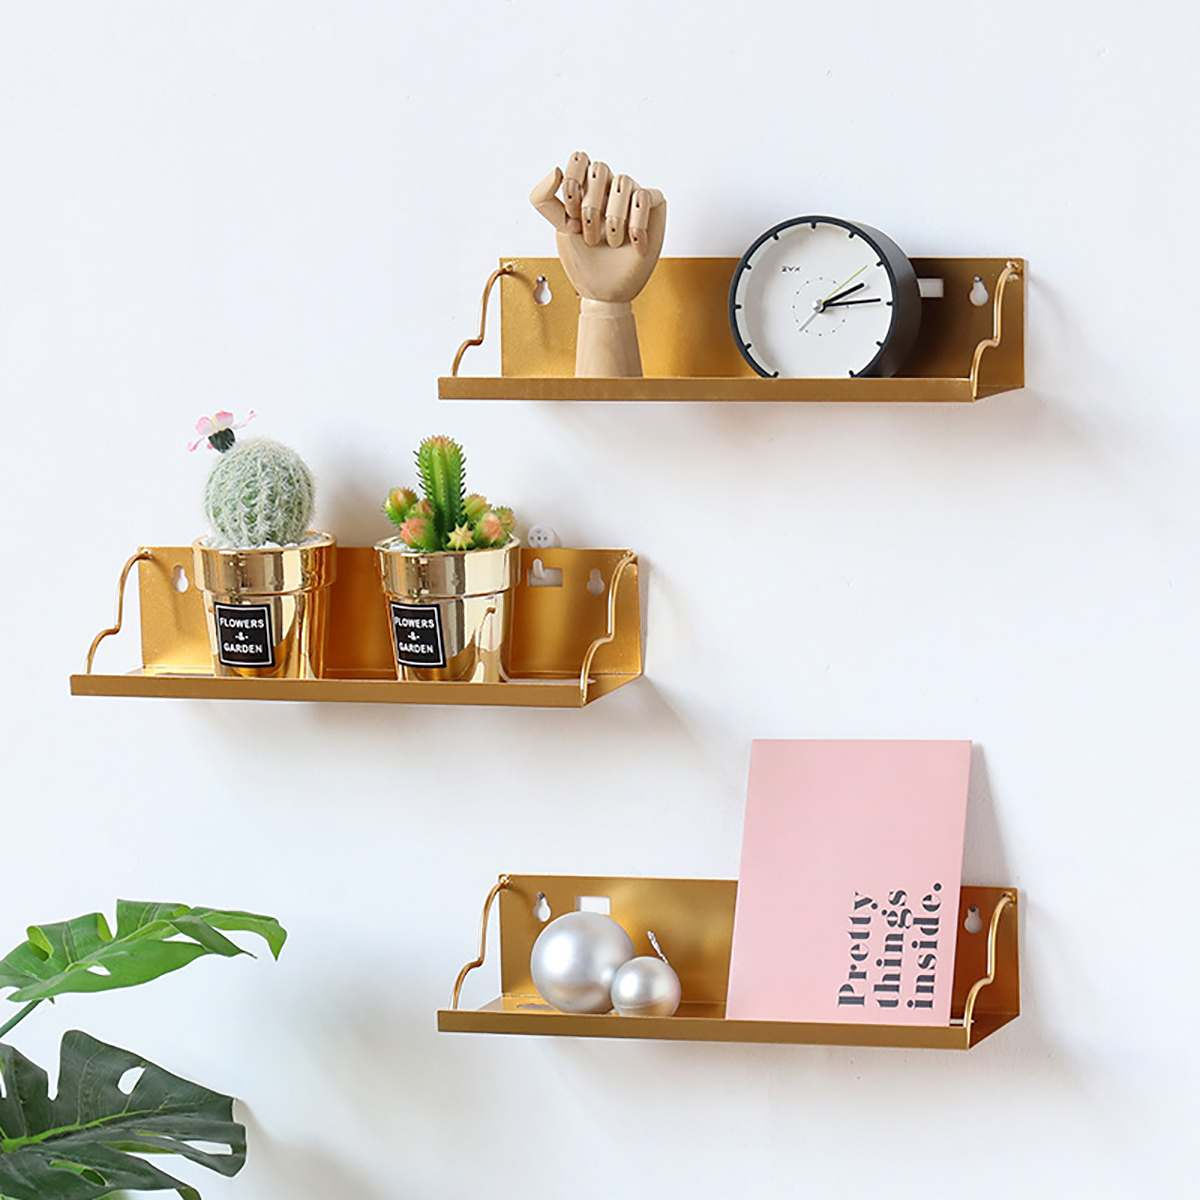 Us 8 1 16 Off Floating Shelves Trays Bookshelves And Display Bookcase Modern Wood Shelving Units For Kids Bedroom Wall Mounted Storage Shelf On